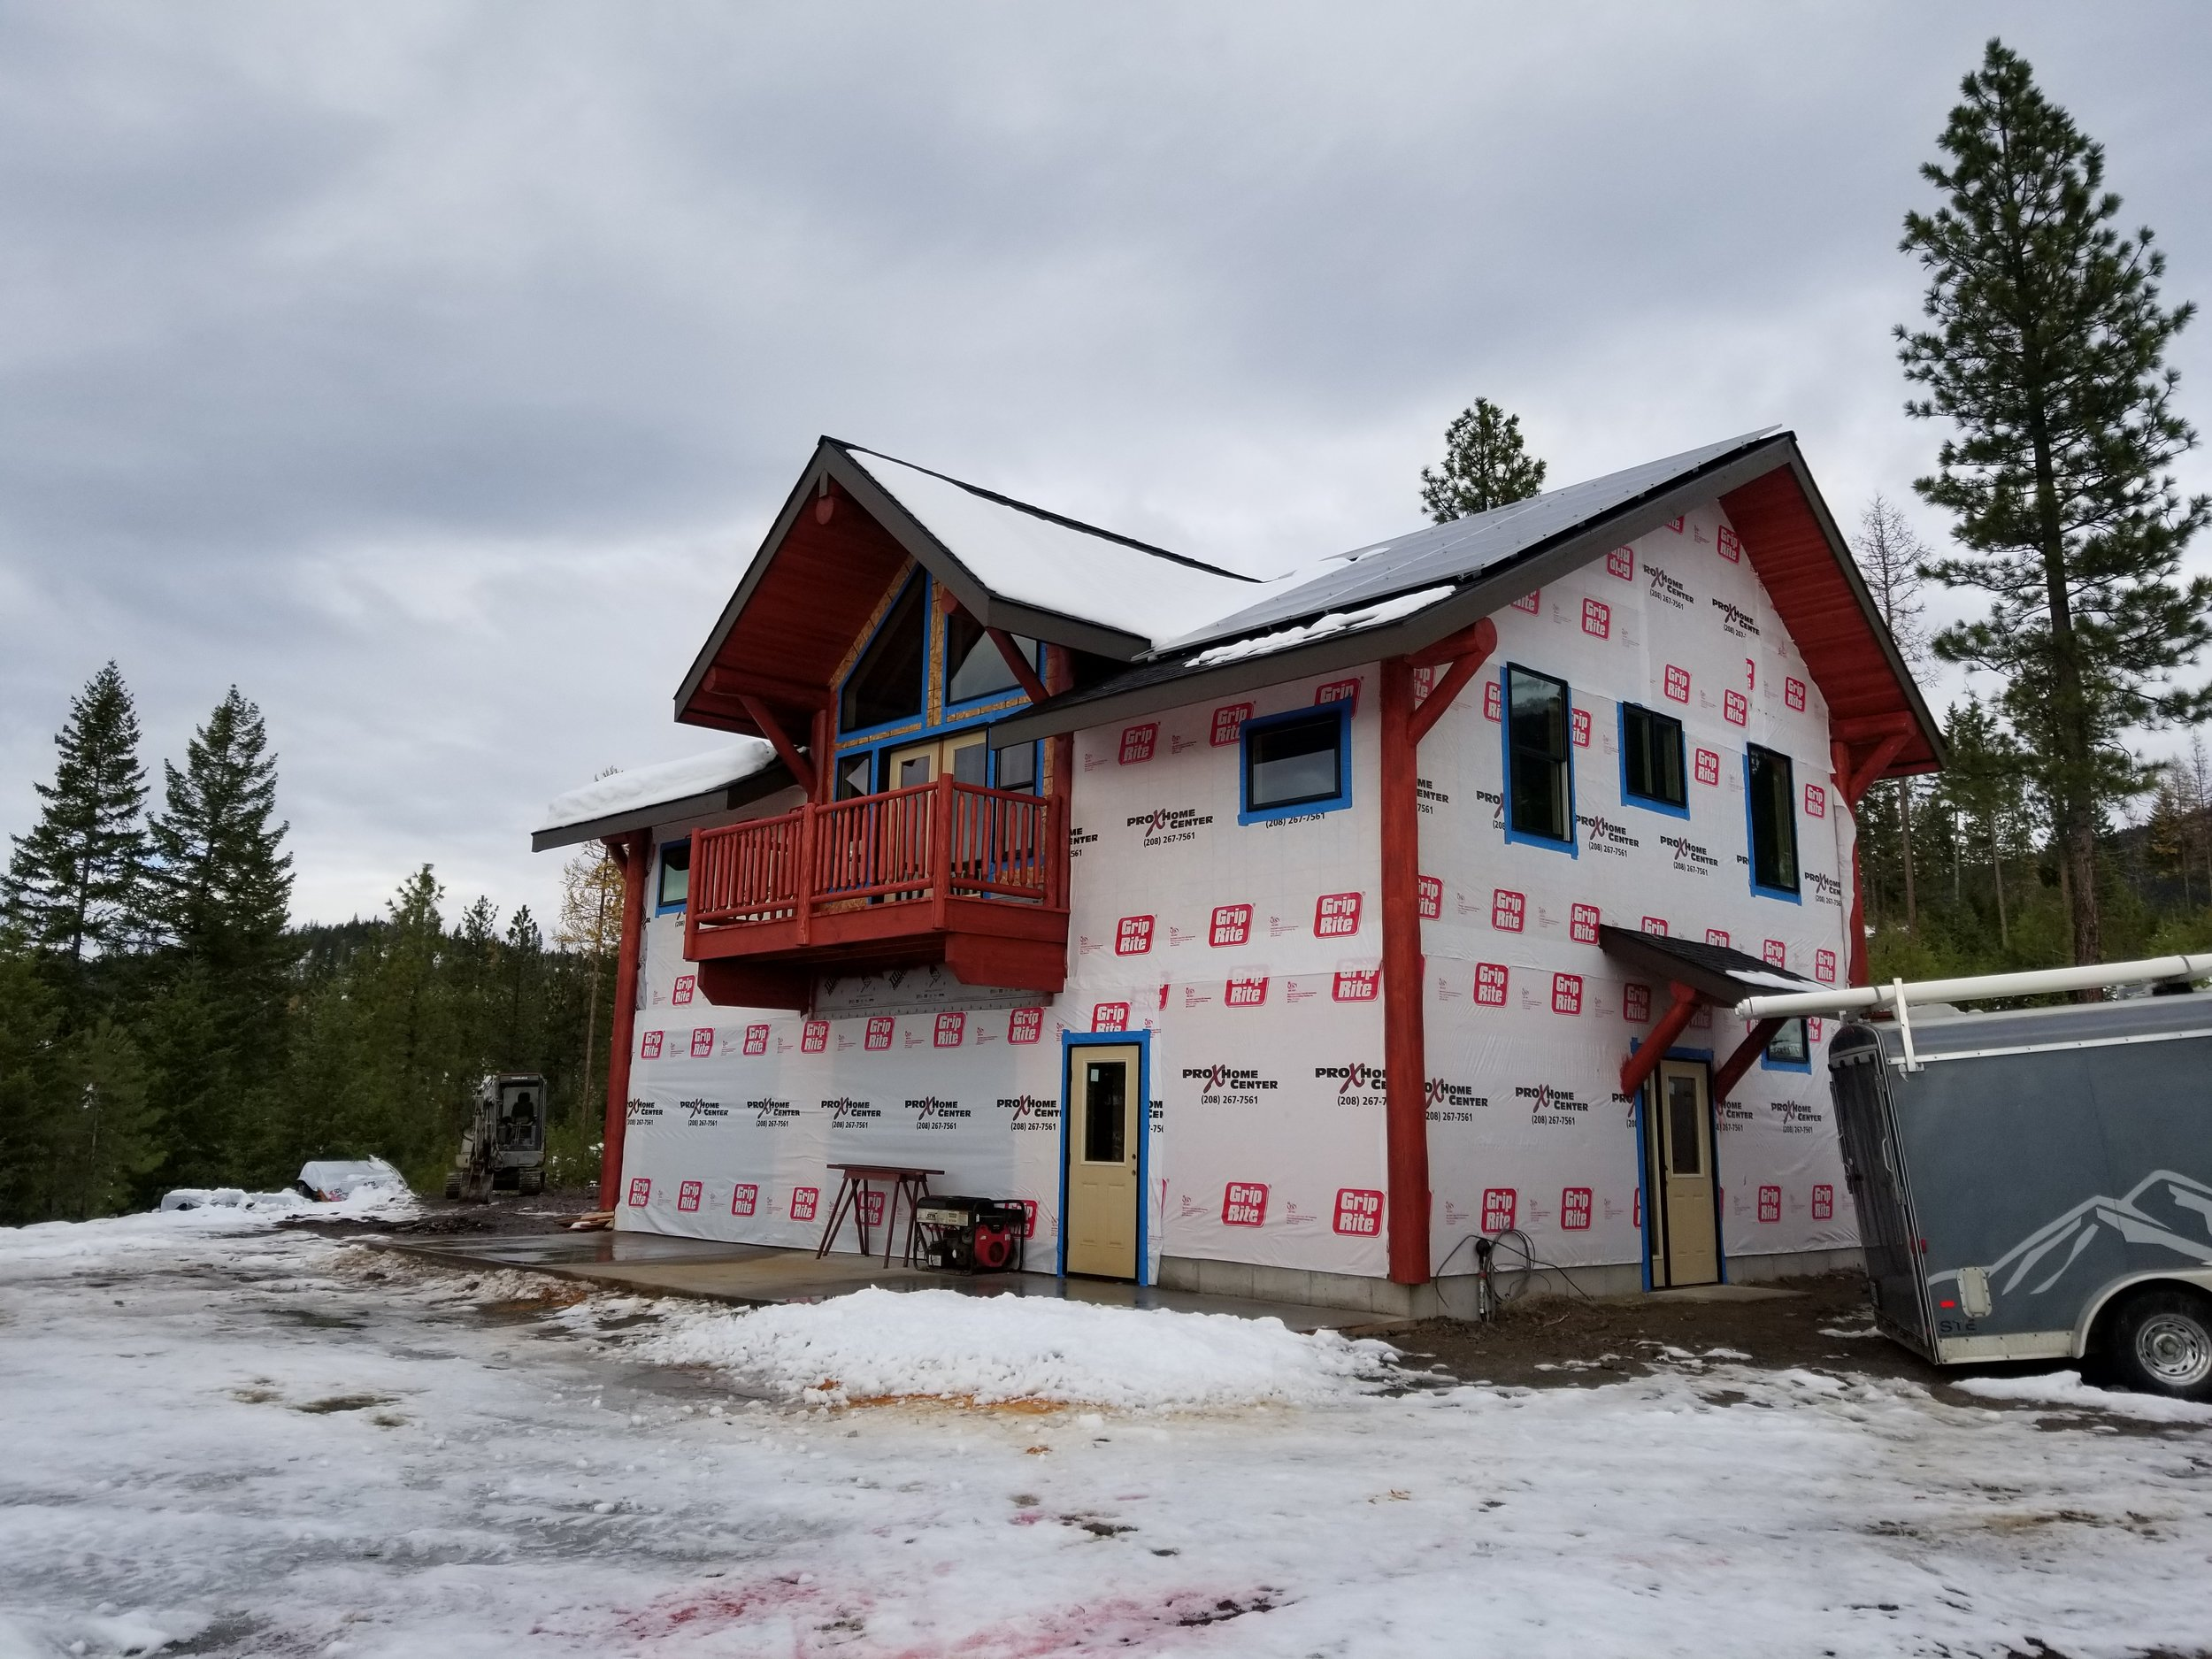 2017-11-12 SR2 House Build Progress #3.jpg